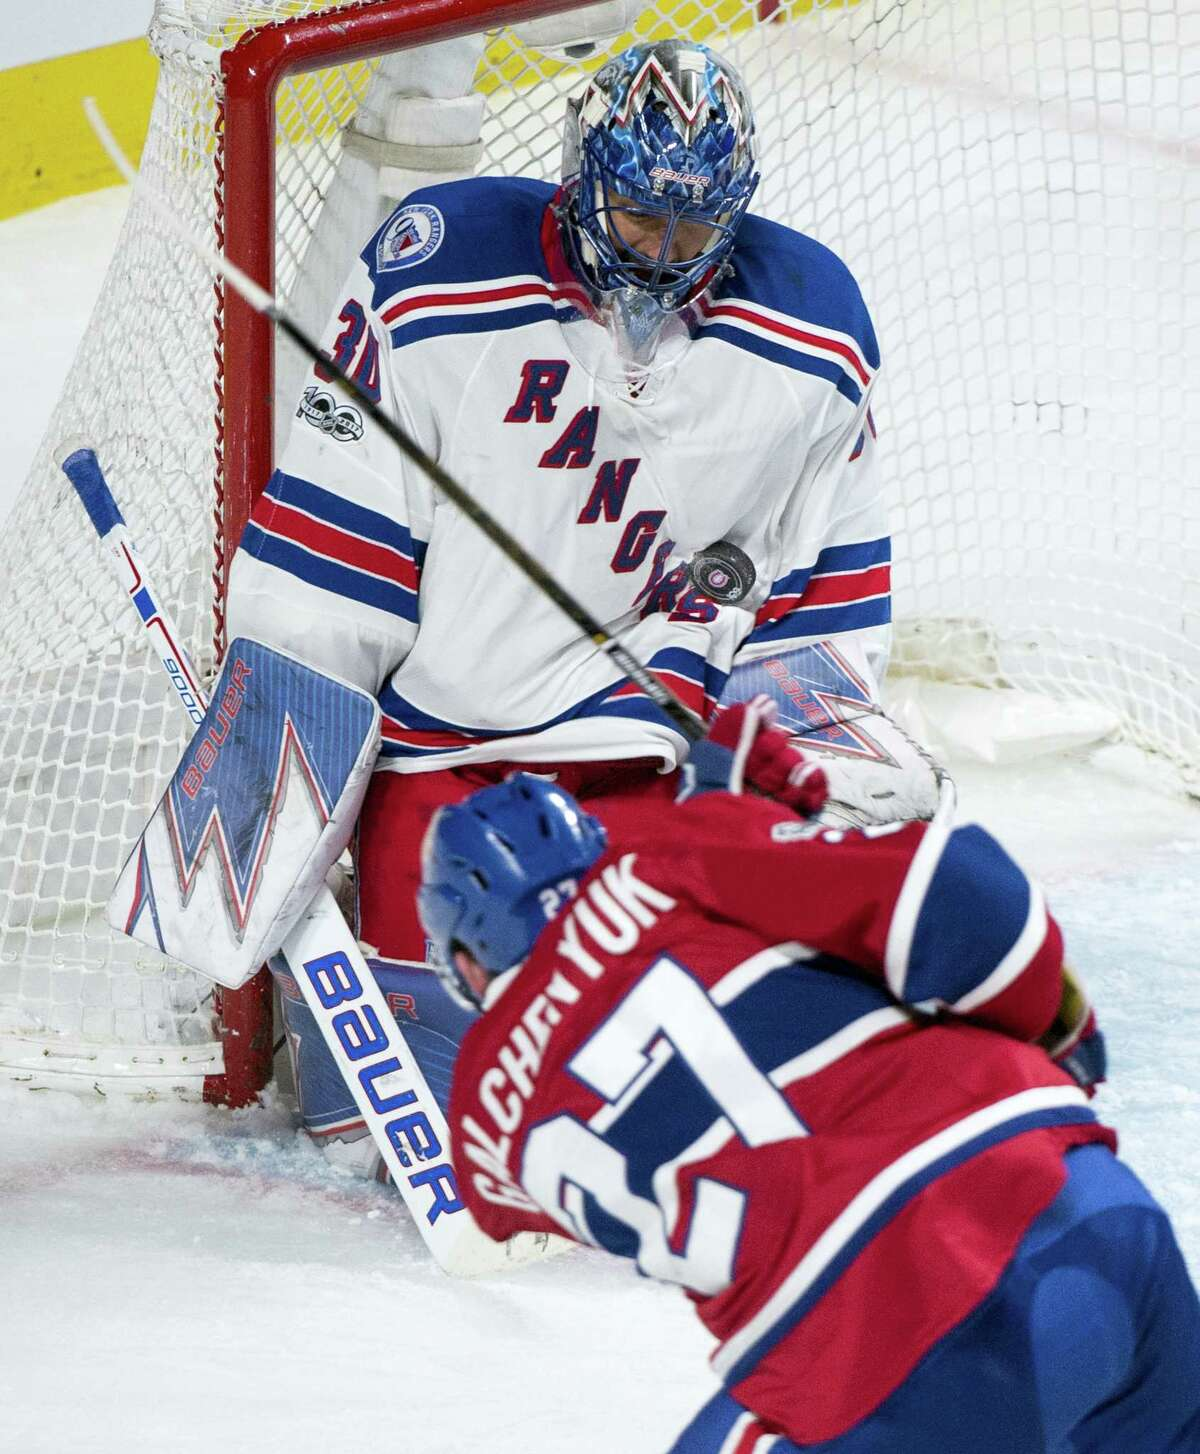 Rangers goaltender Henrik Lundqvist stops a shot by the Canadiens' Alex Galchenyuk during the second period Friday in Montreal.